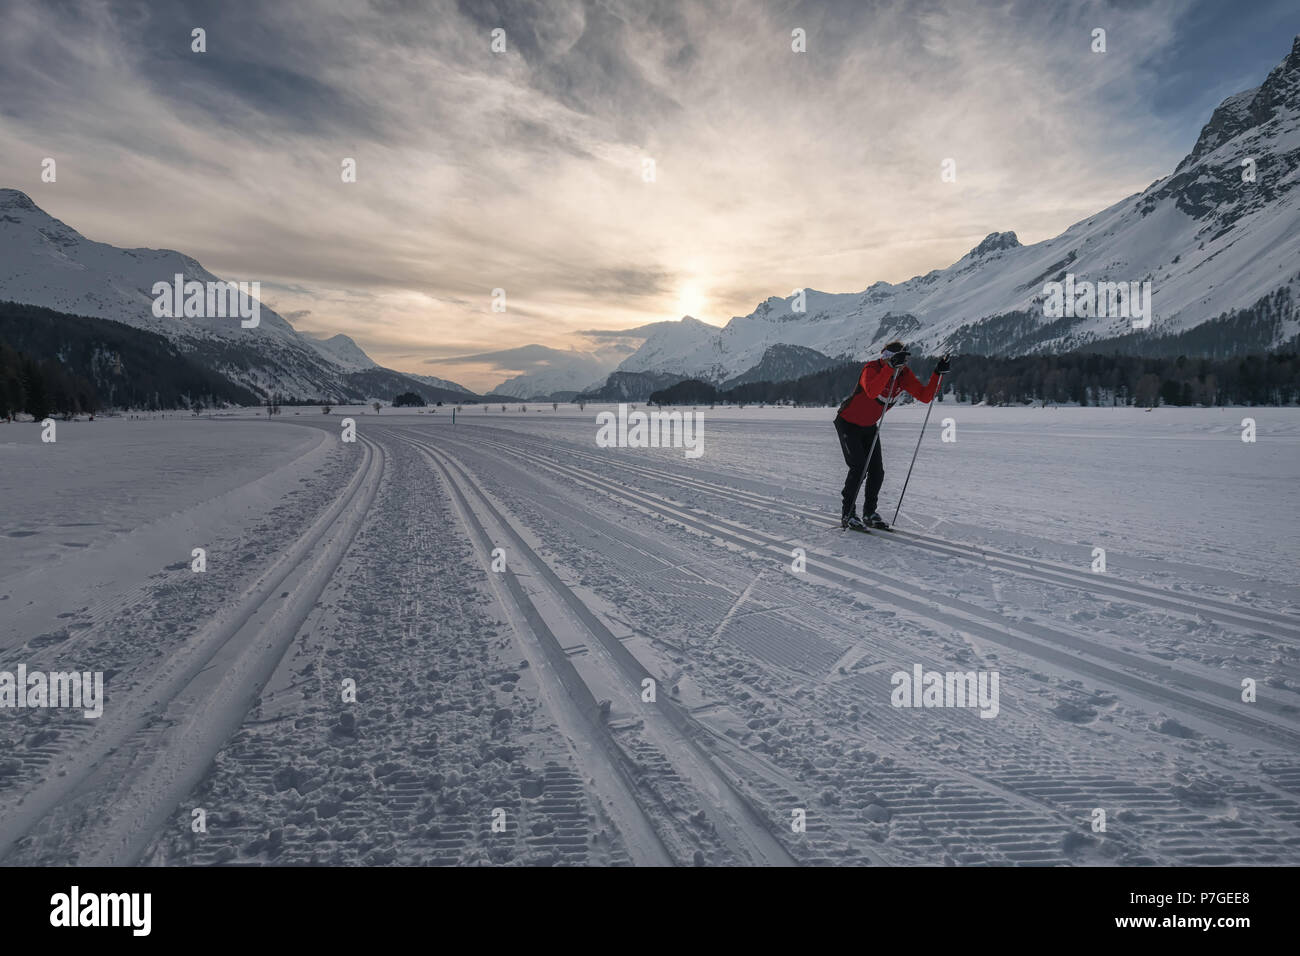 classic skate skiing in Sils, Engadin - Stock Image